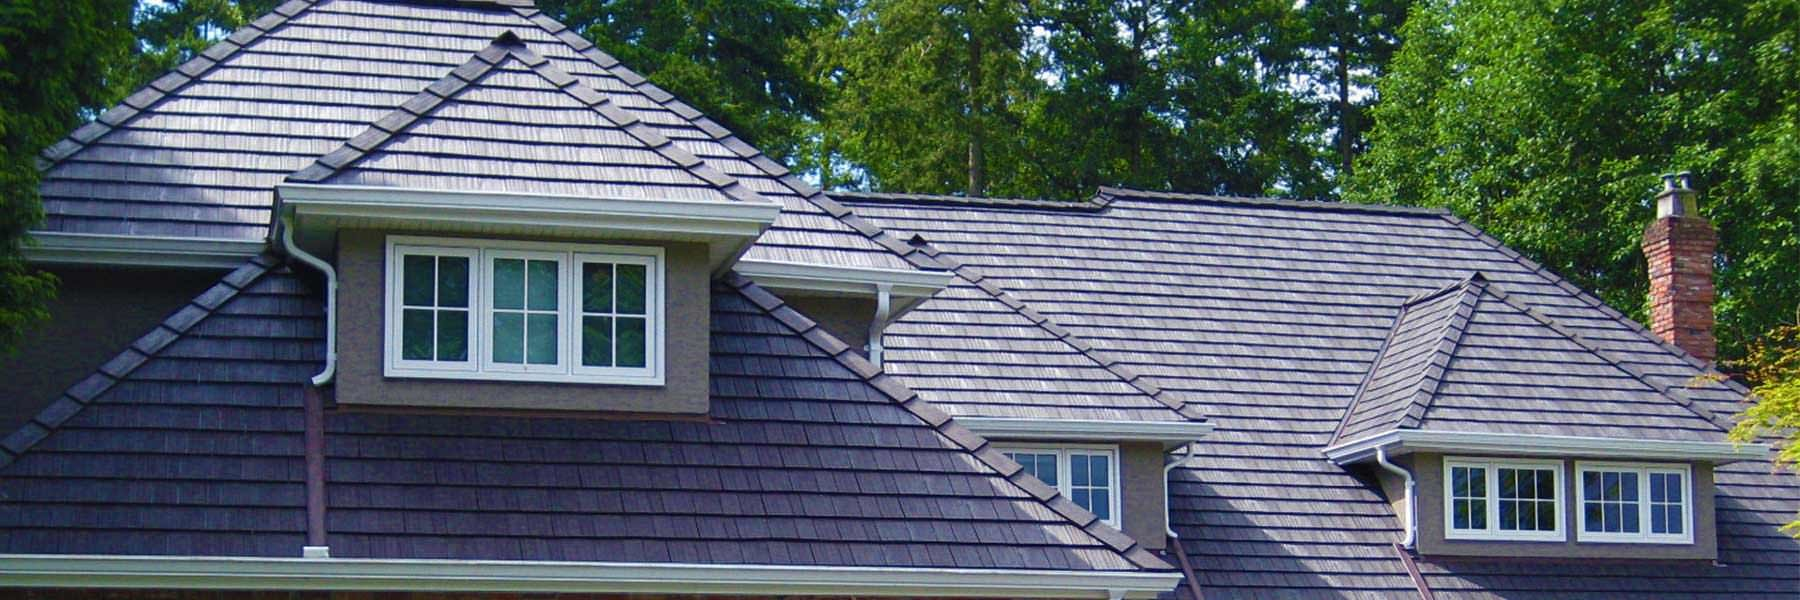 Rubber Shingled Roof Alberta